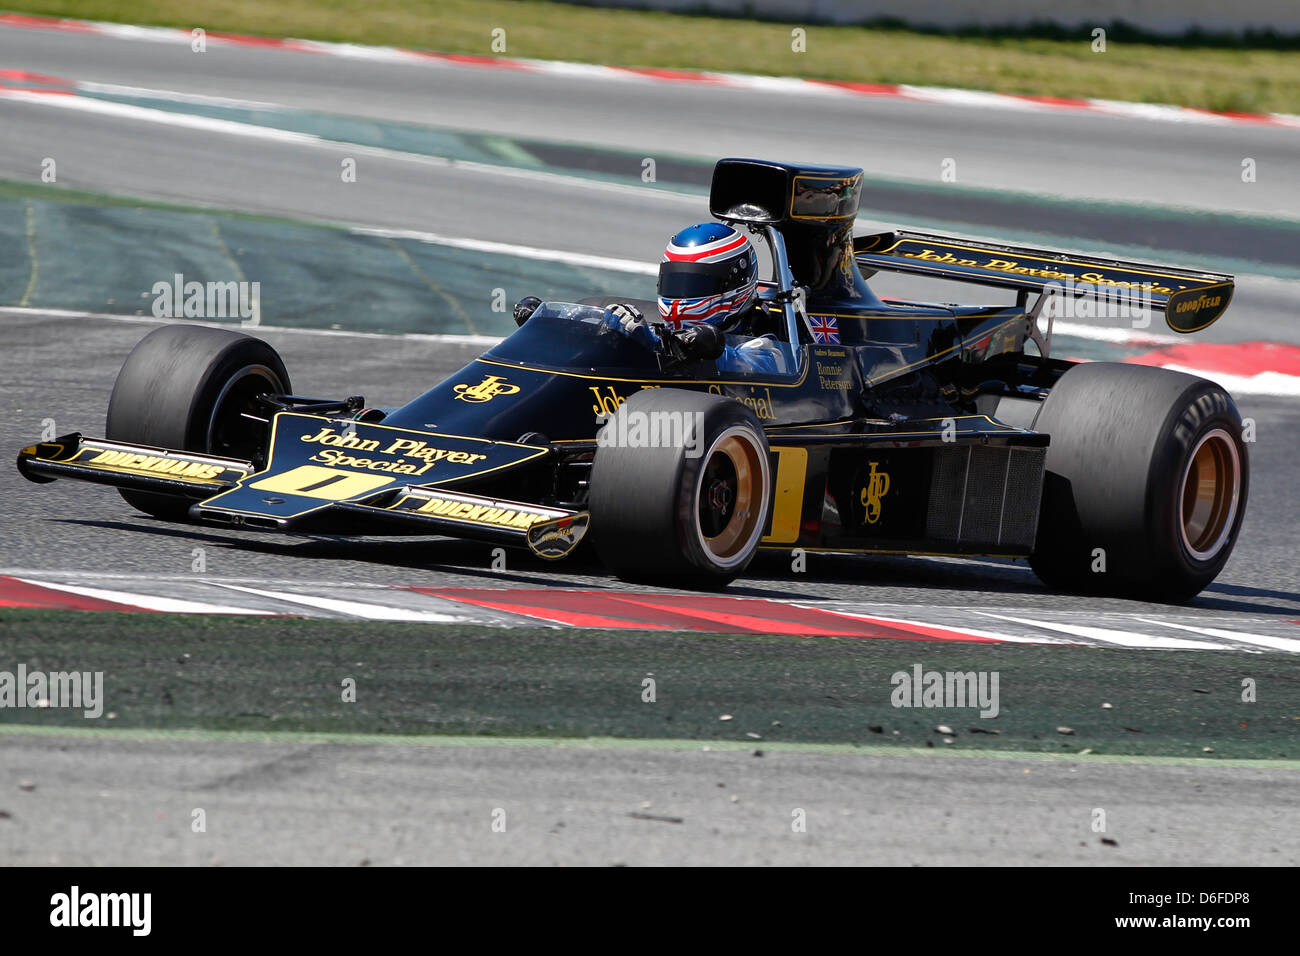 FIA Masters Historic Formula One race at Montmelo 12th April 2013 - Andrew Beaumont in 1974 Lotus 76/1 - Stock Image